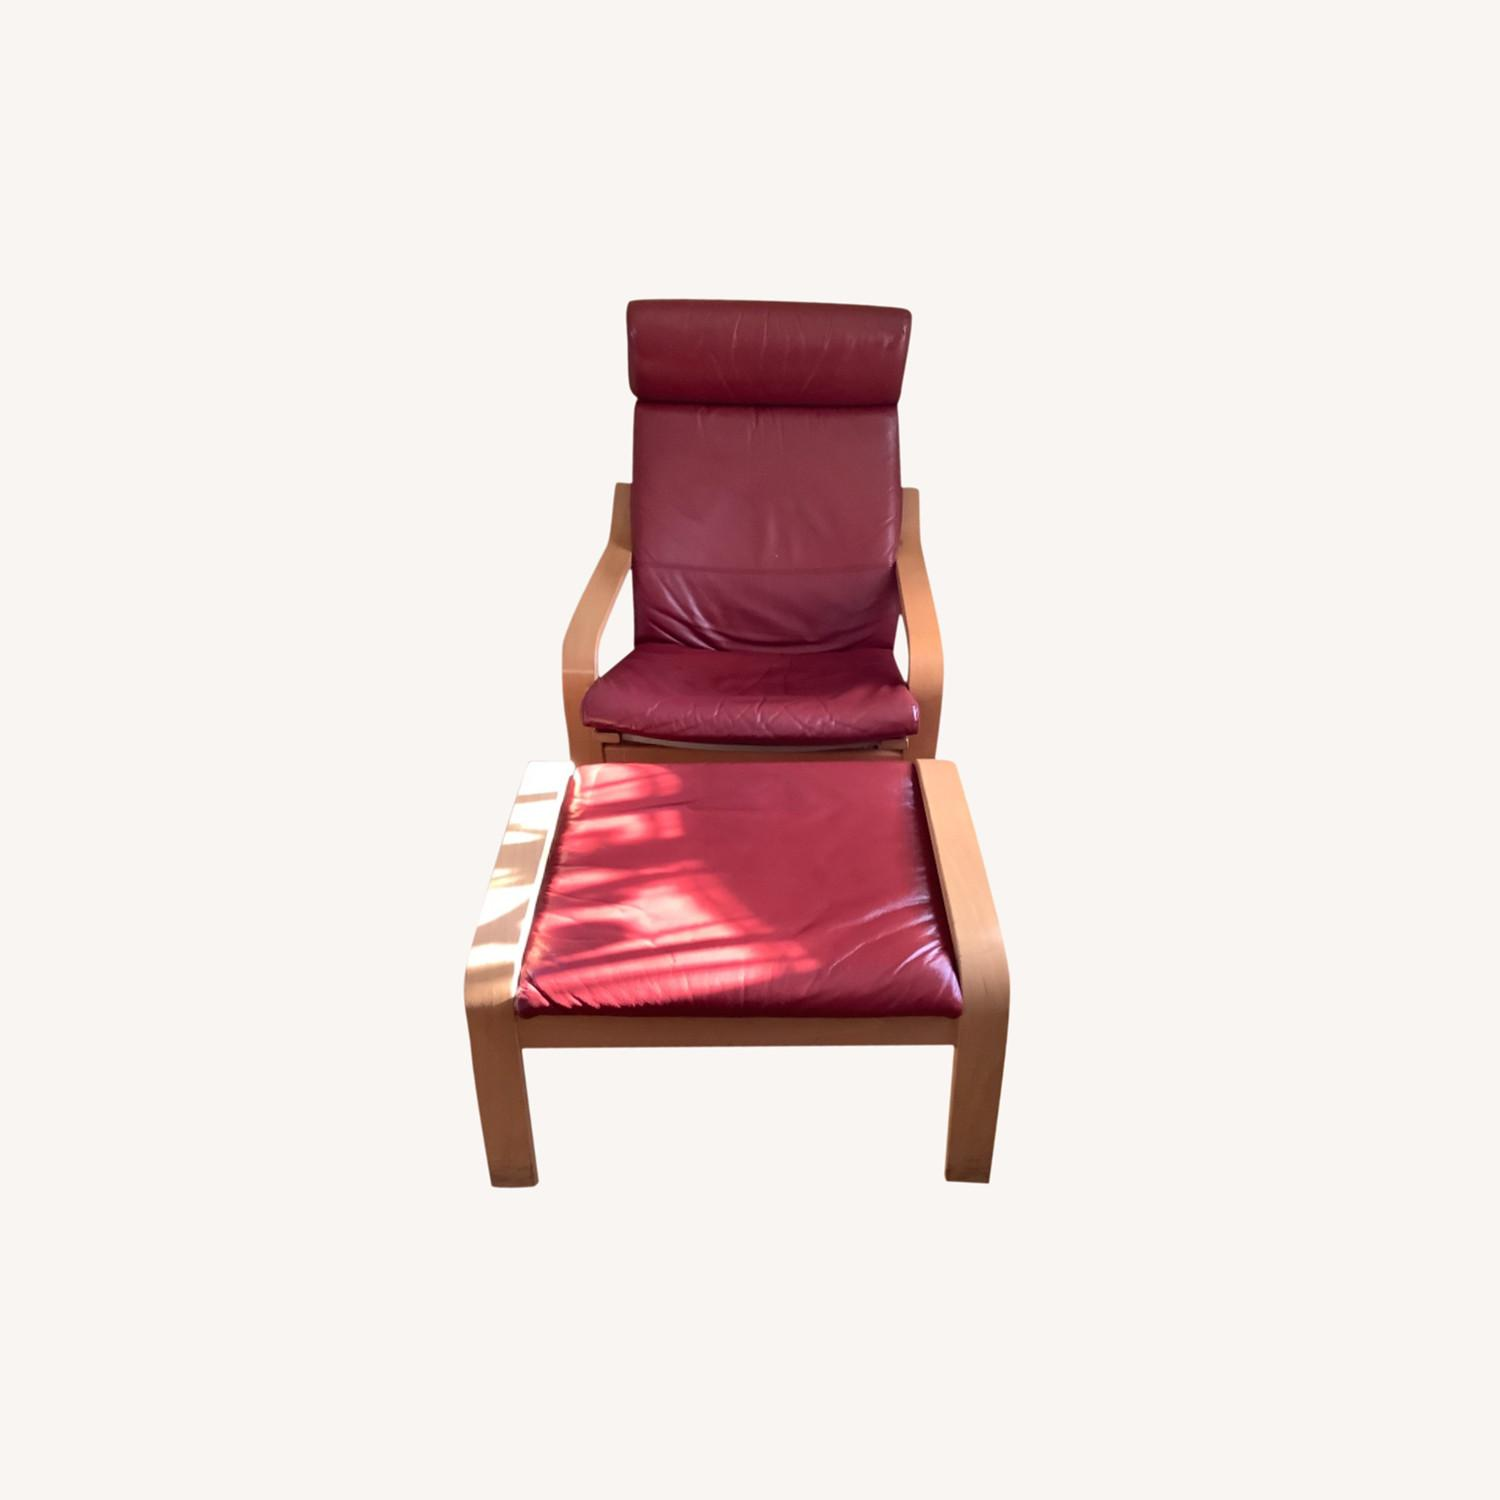 Red Leather Recliner with Foot Stool - image-7